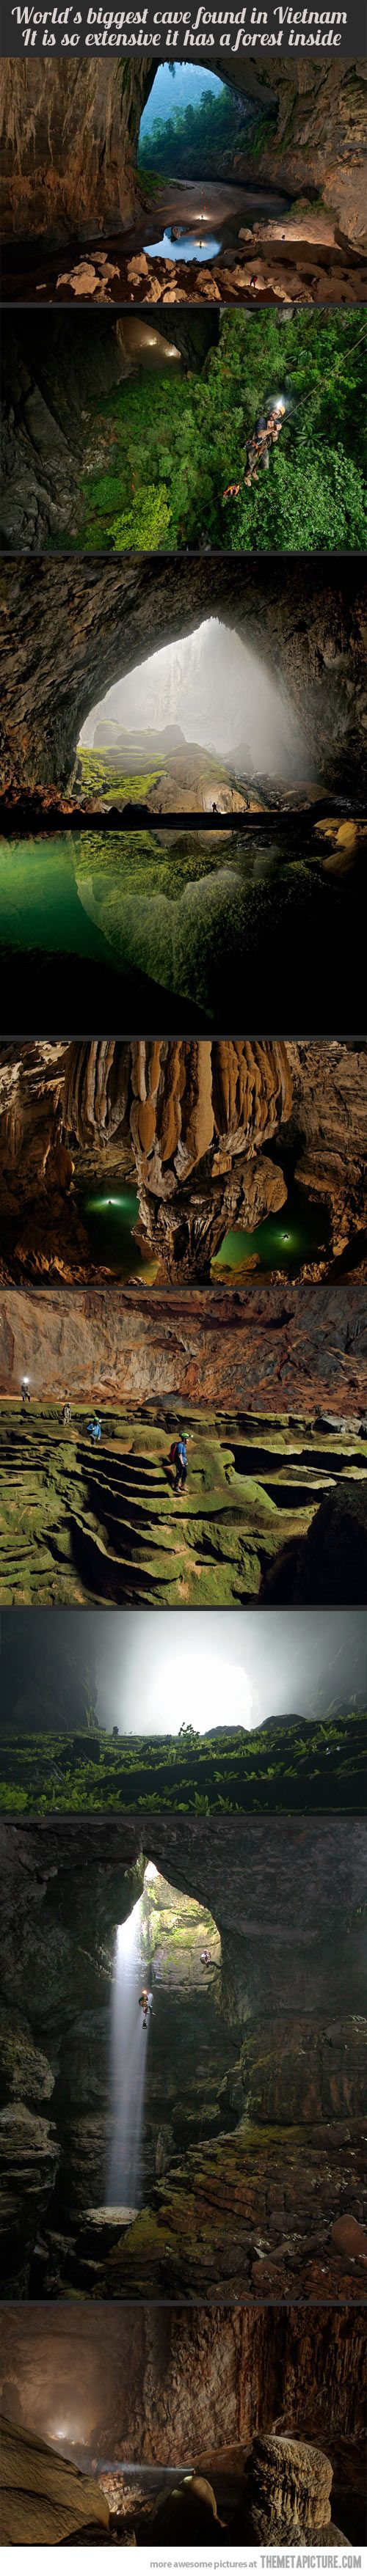 Largest cave in the world - Vietnam. This place looks amazing!